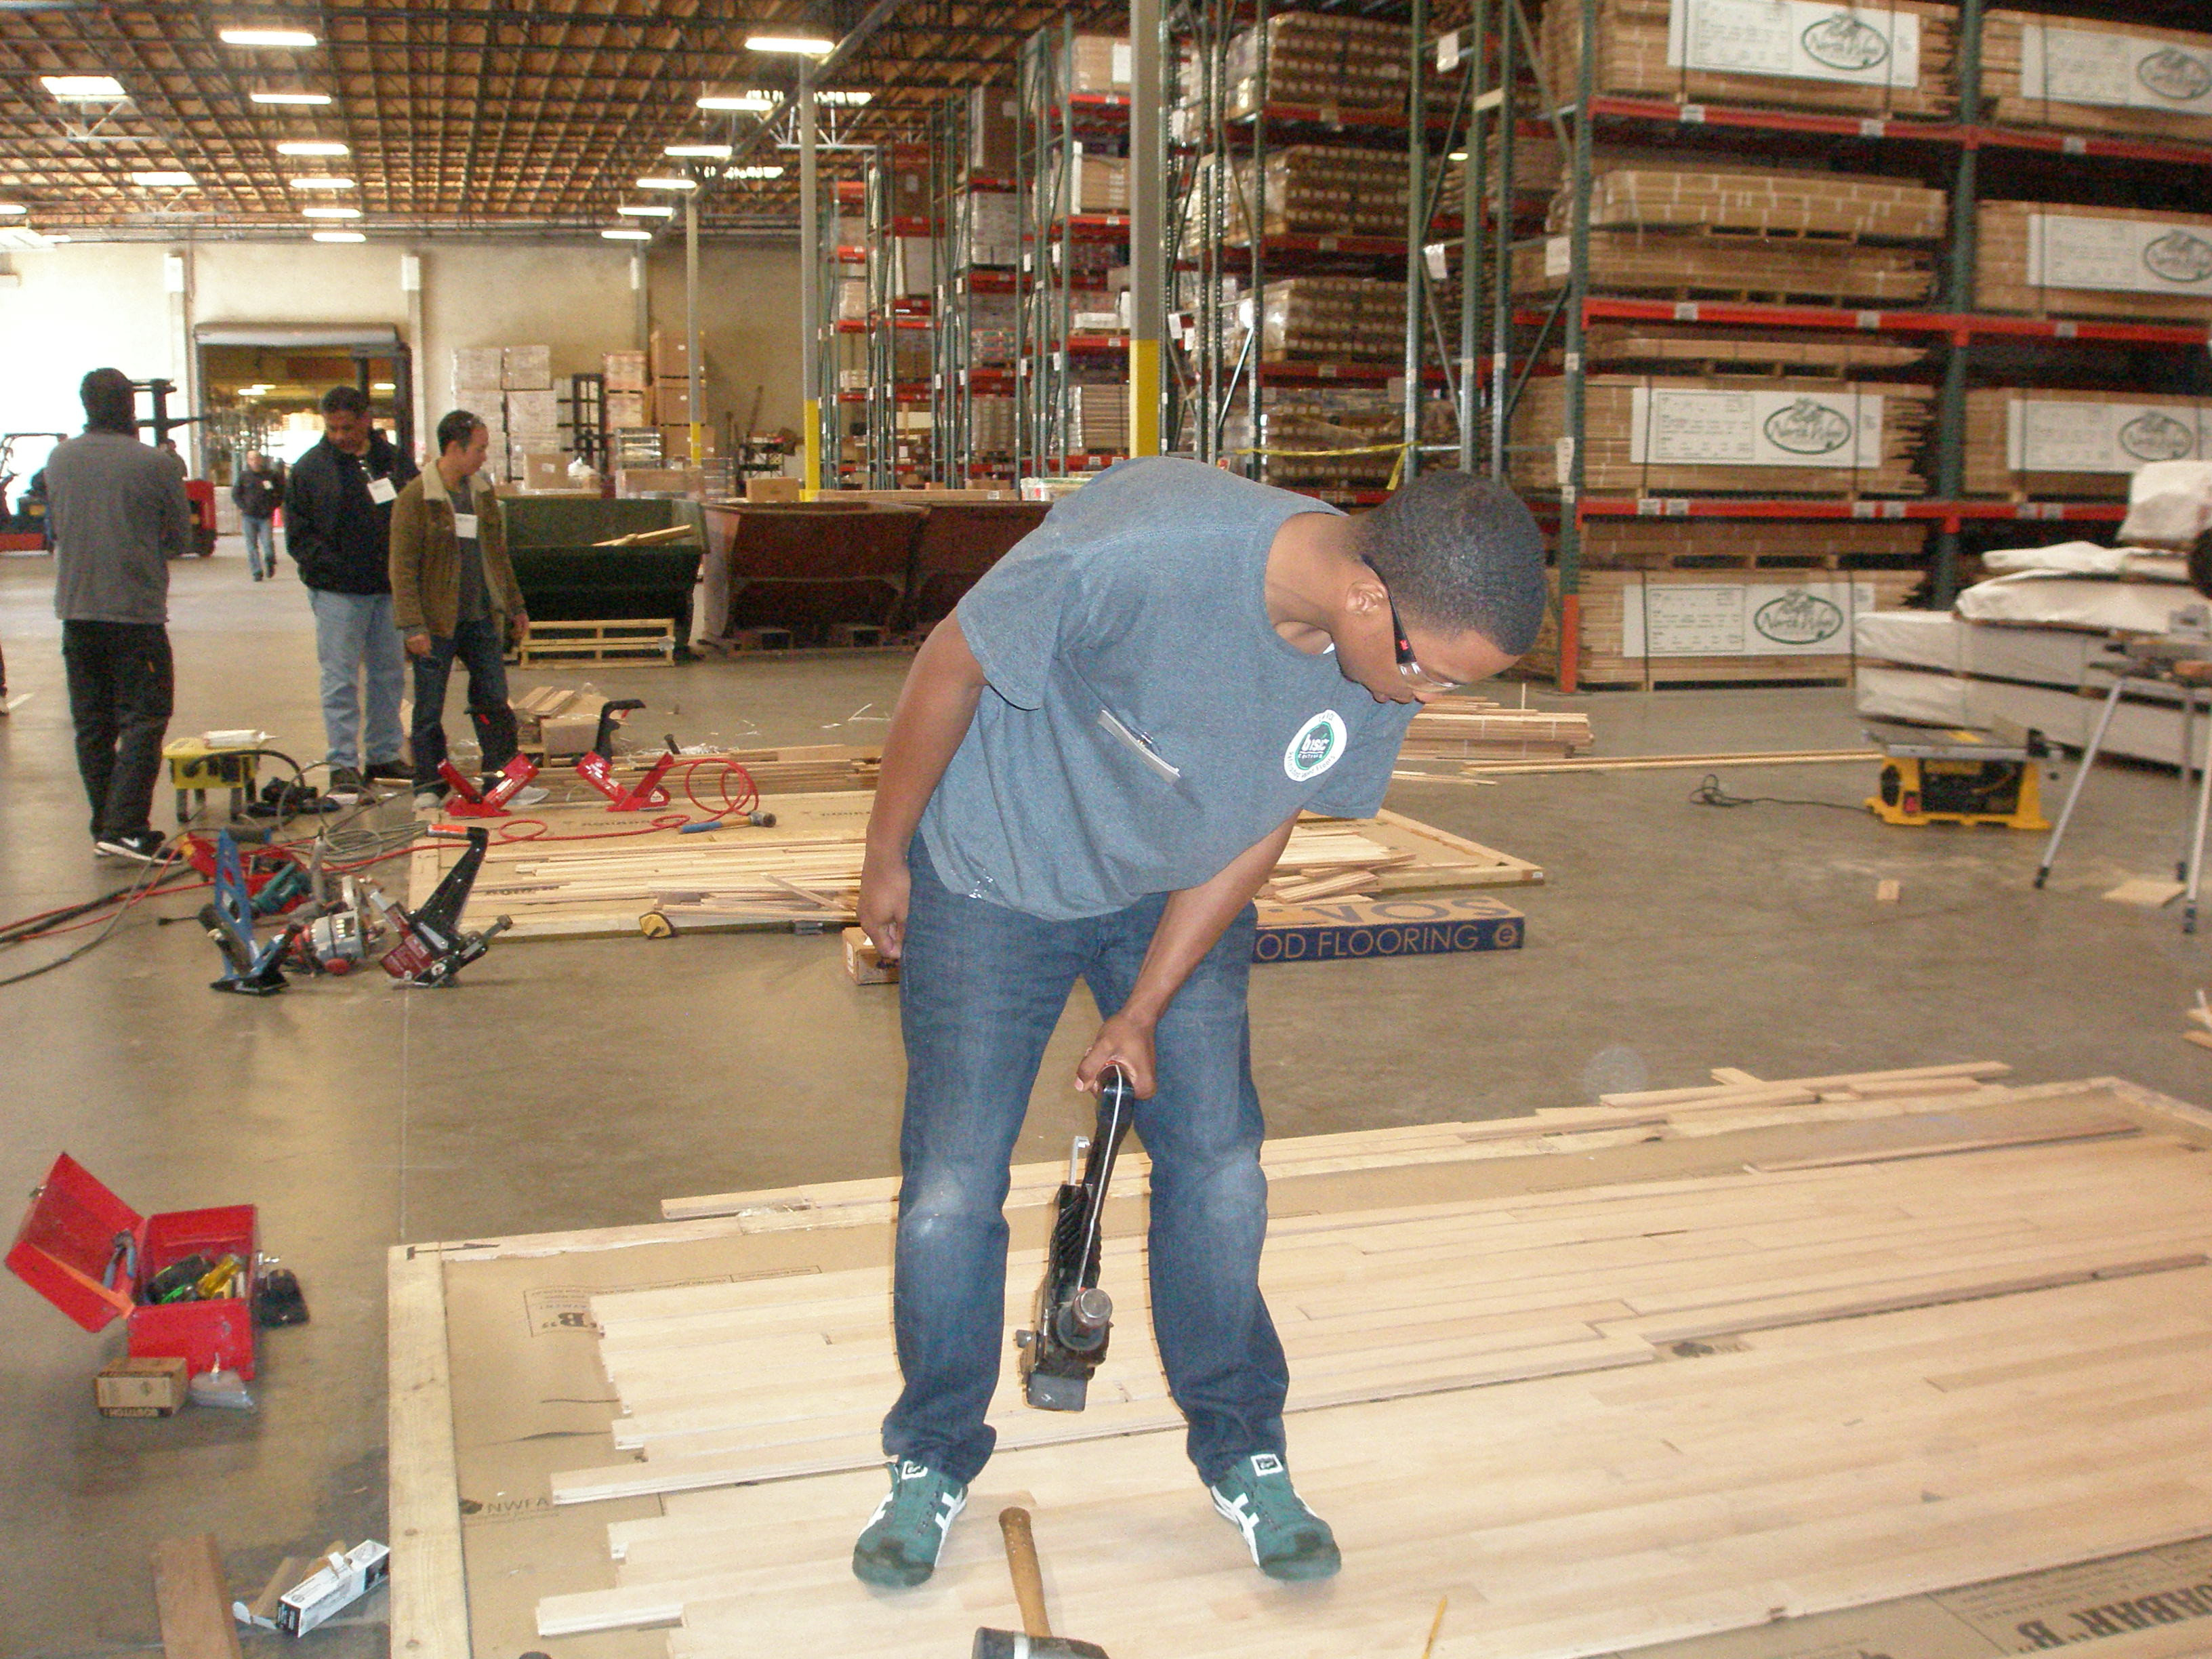 22 attractive Hardwood Floor Repair Charlotte Nc 2021 free download hardwood floor repair charlotte nc of traveling nwfa school wraps up california classes wood floor with photos courtesy of bob goldstein